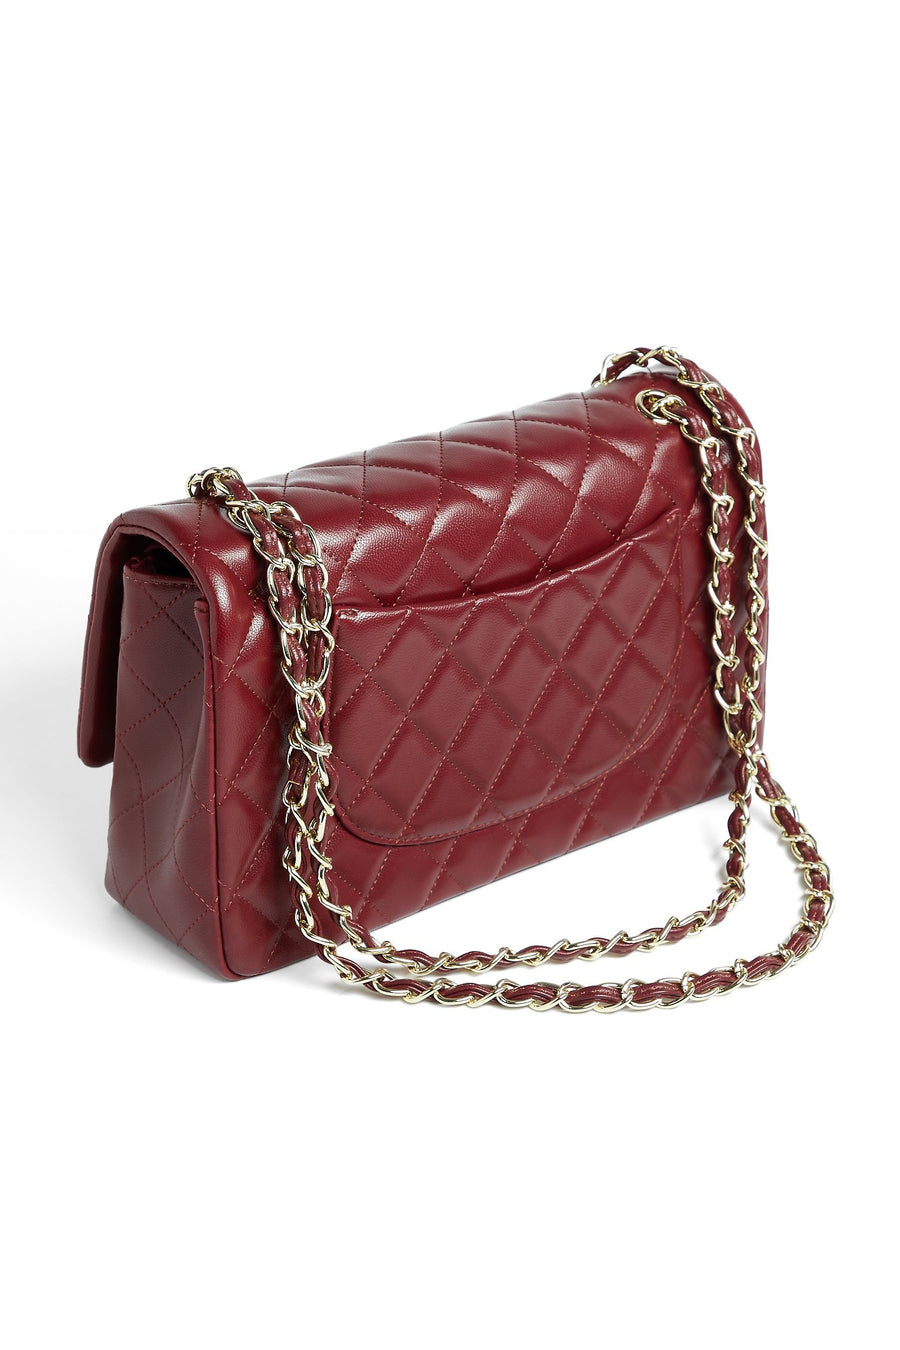 Call It Quilts Bag - Deep Red